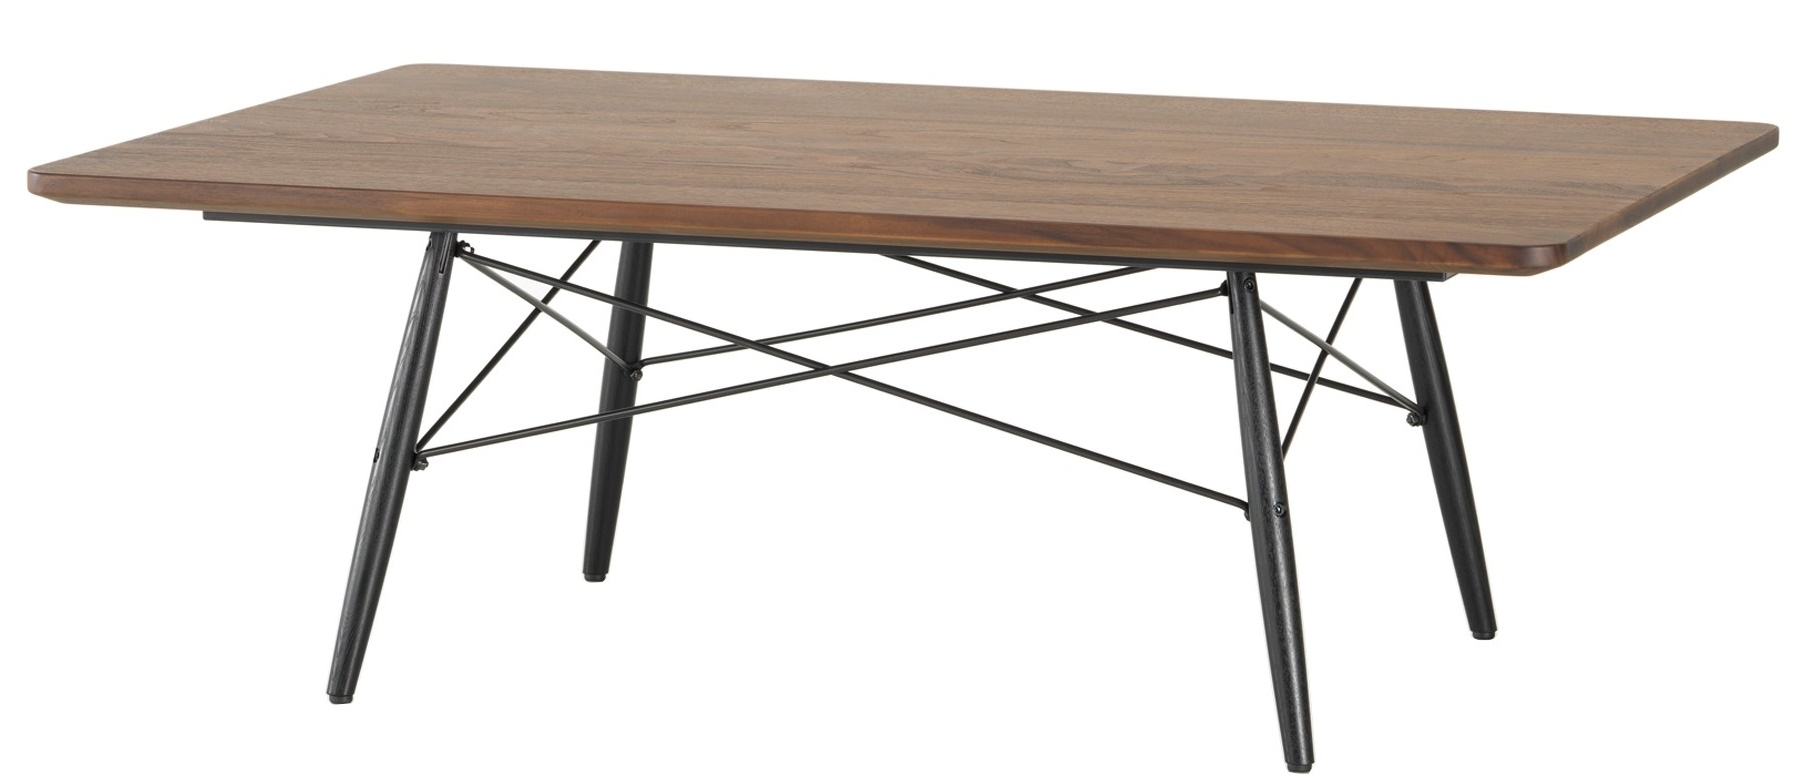 Couchtisch Eames Eames Coffee Table Vitra Couchtisch Milia Shop